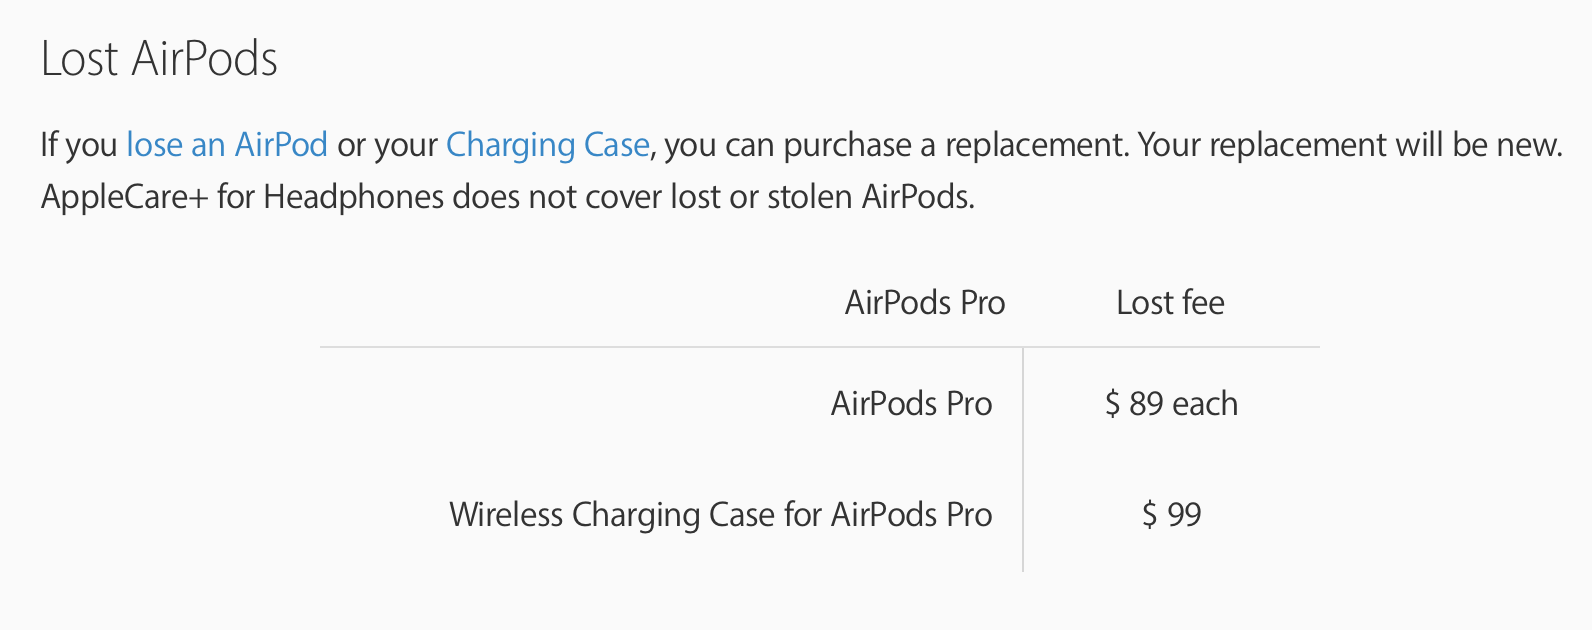 AirPods Pro lost replacement costs